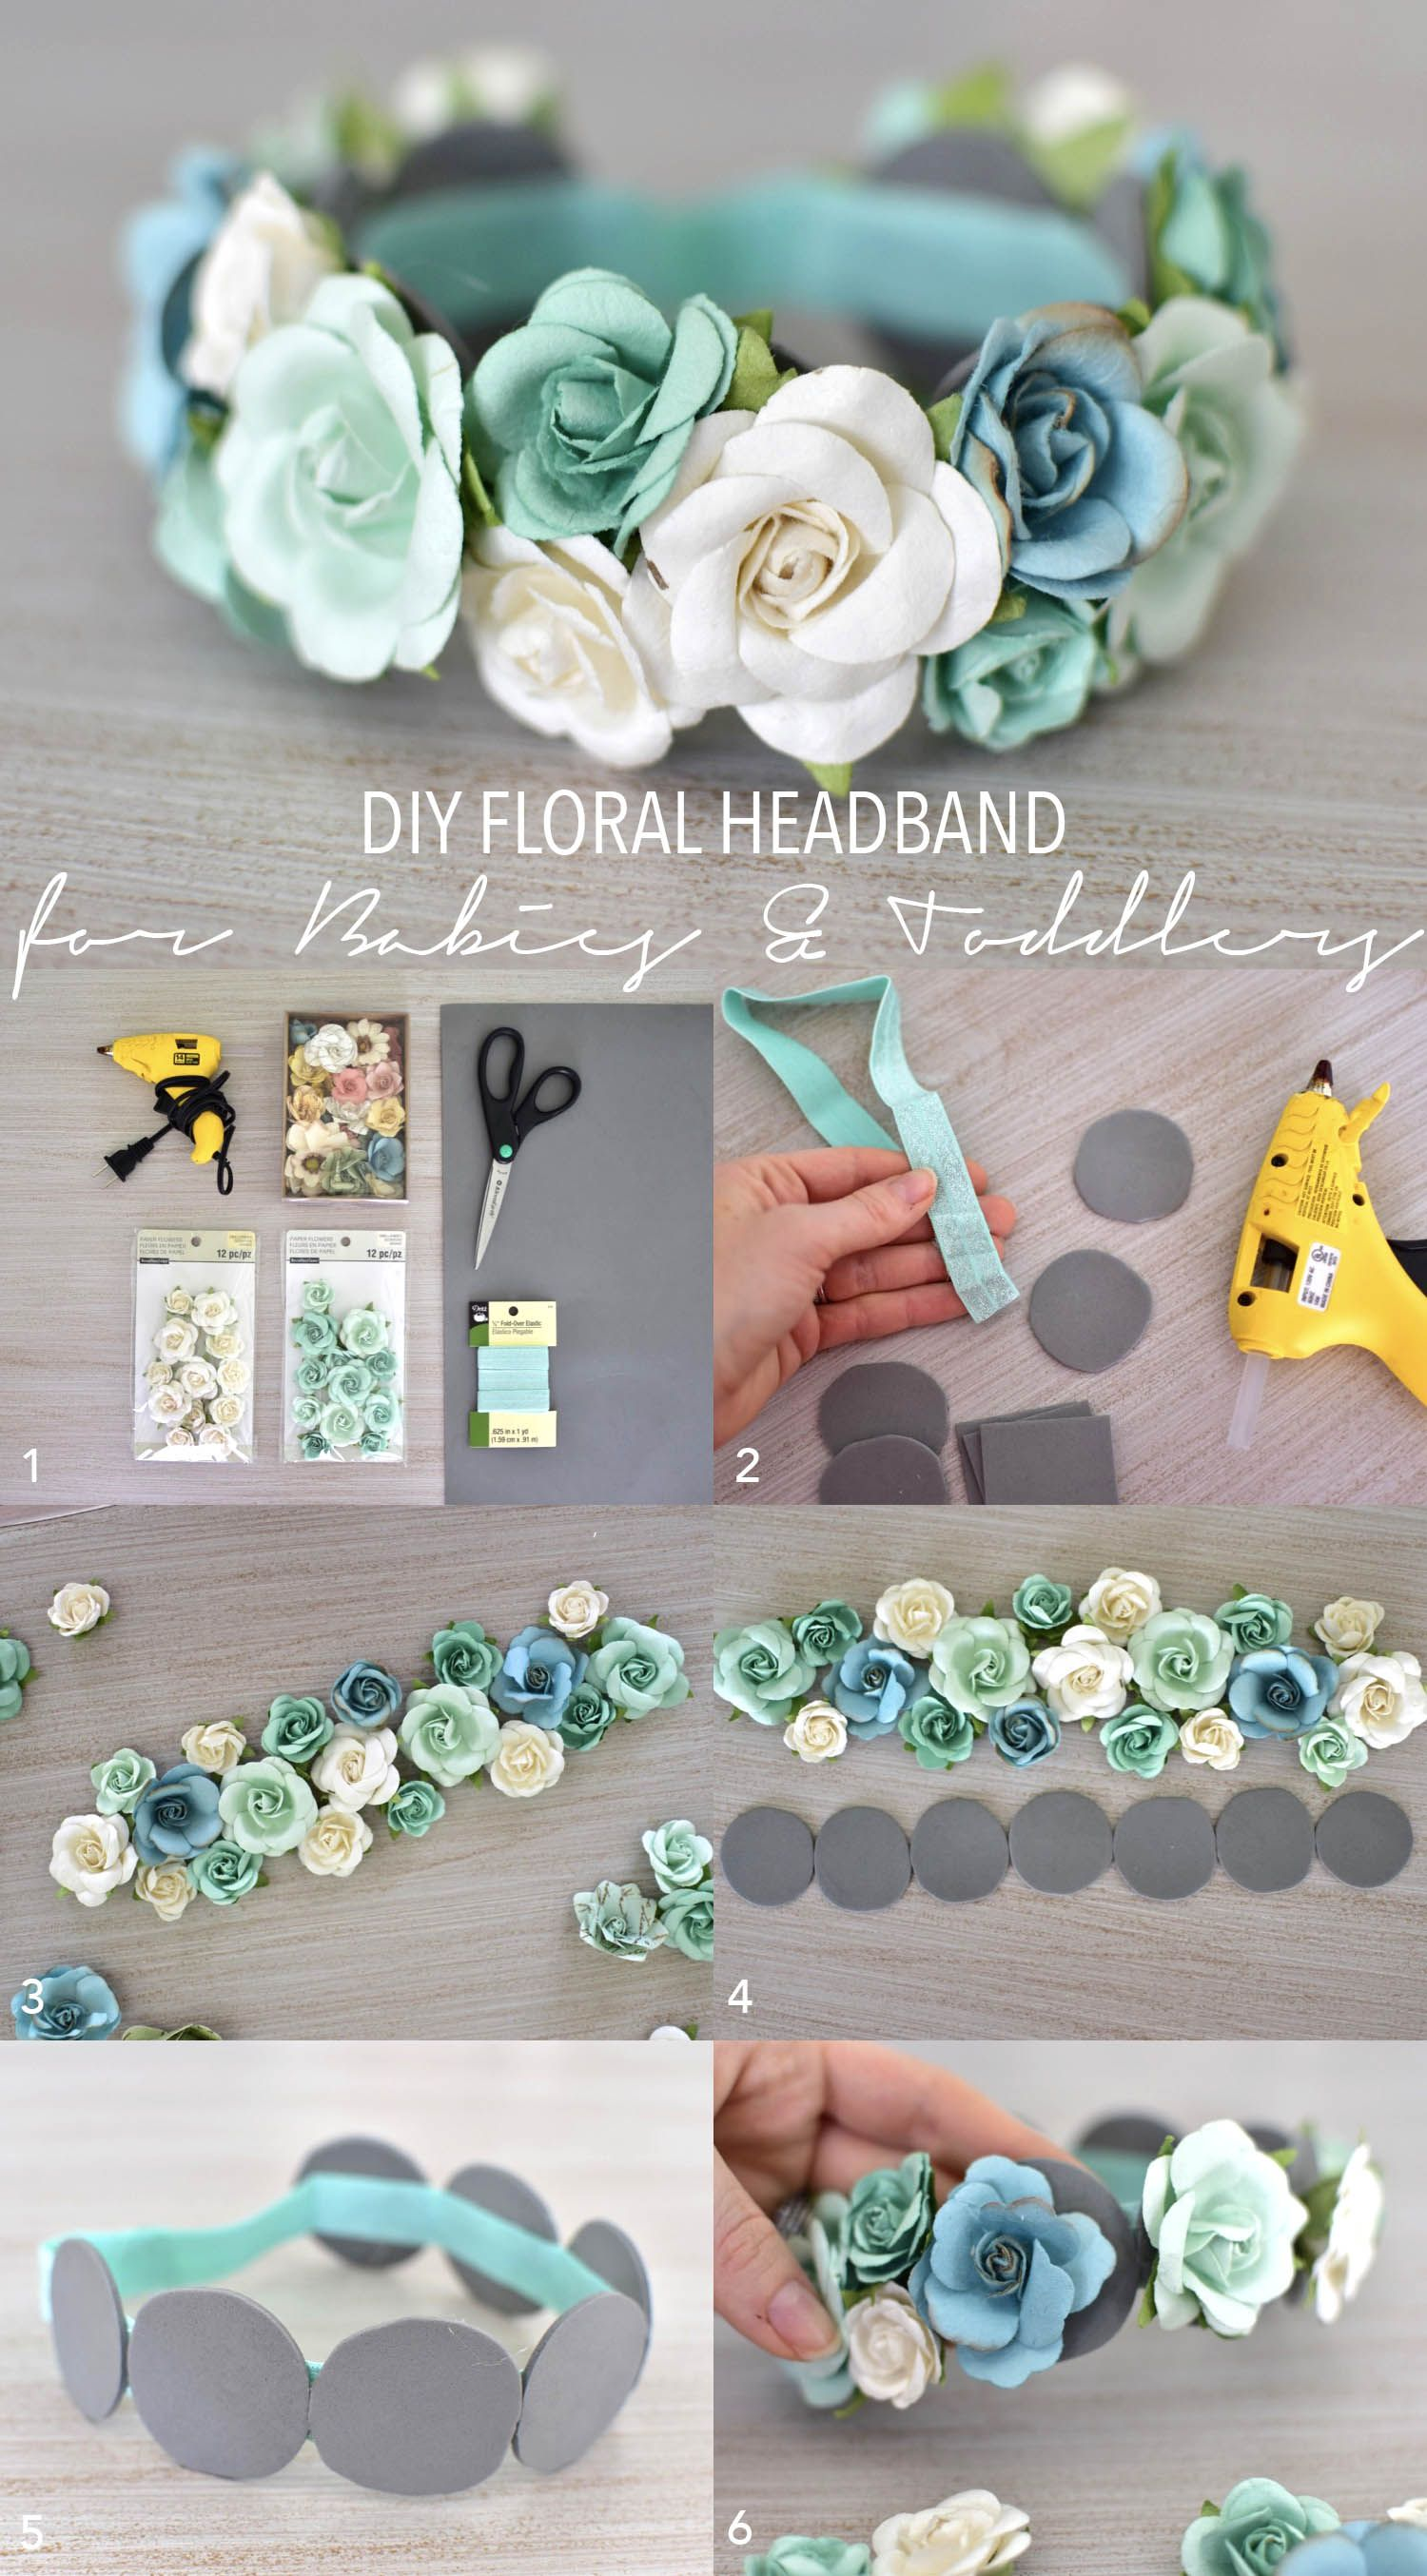 How to Make a Mix-and-Match Headband for Ribbon Flowers & More